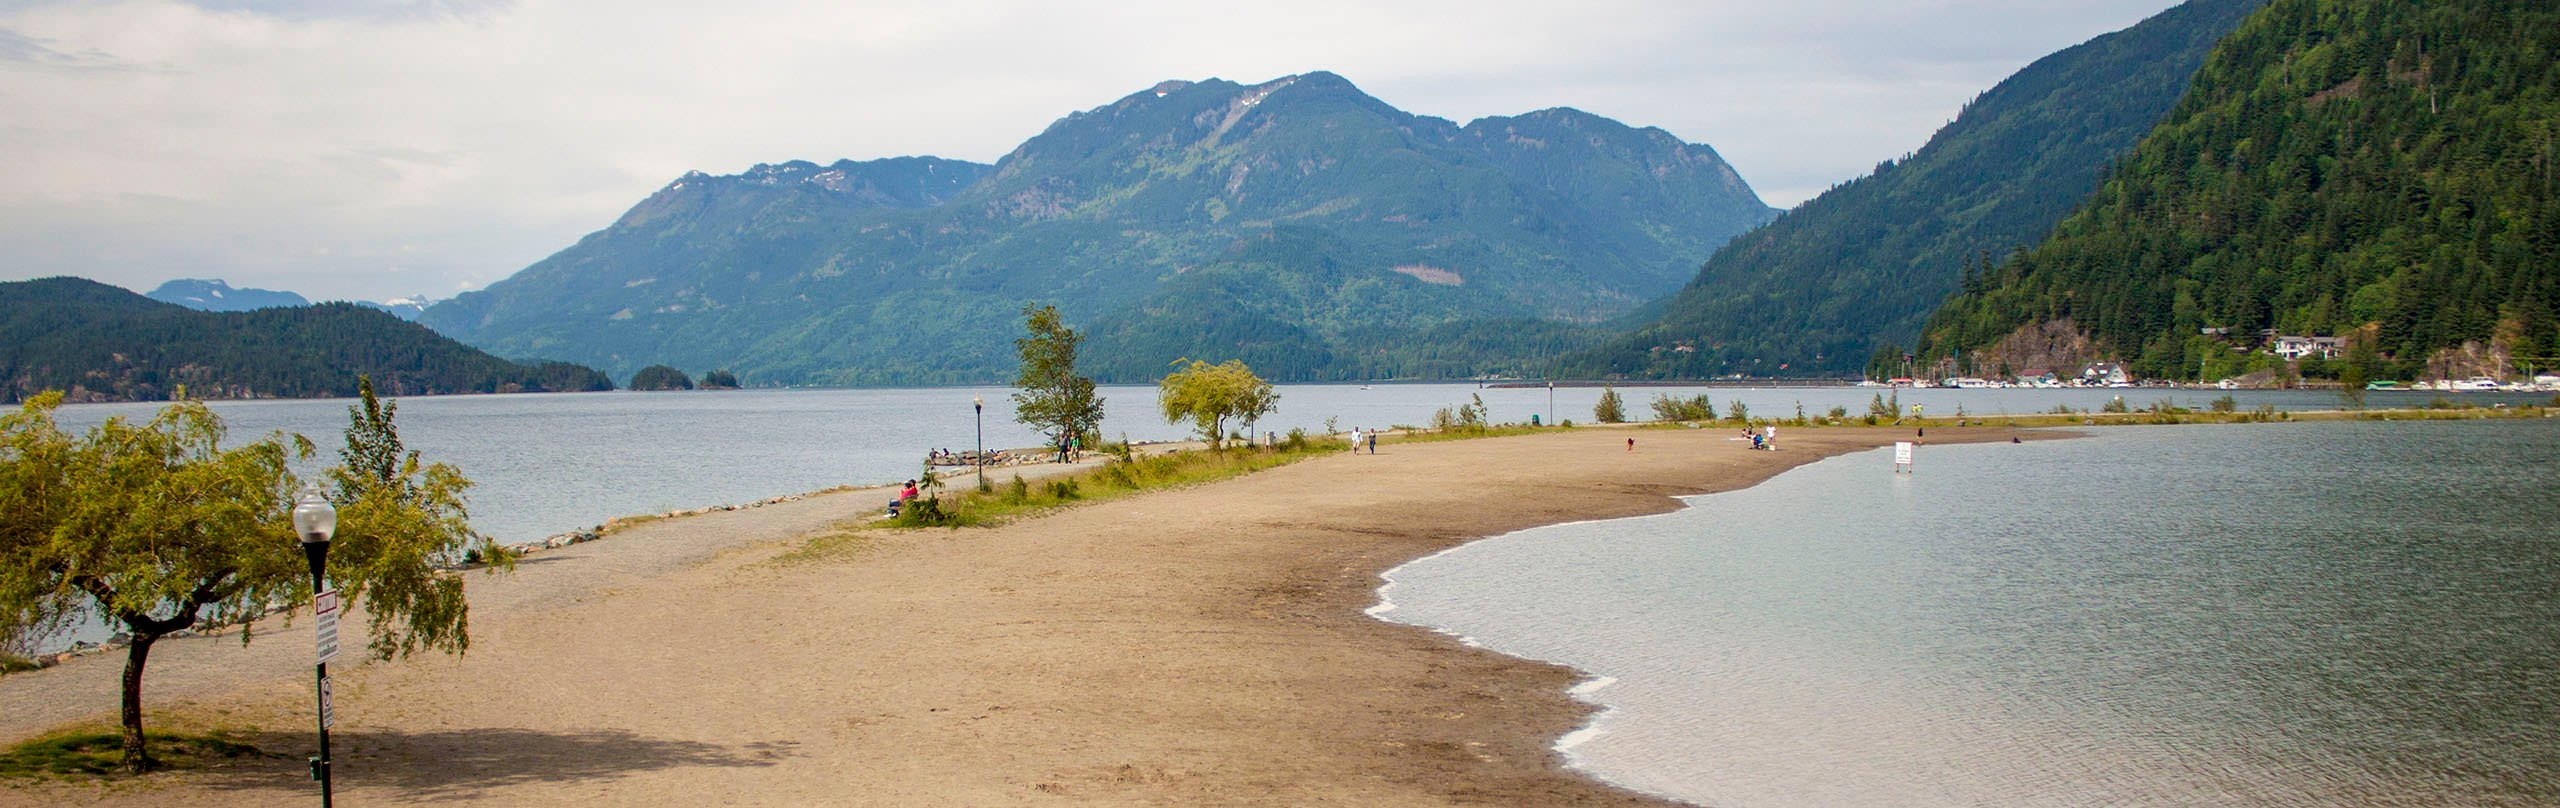 A view of the beach and Harrison Lake